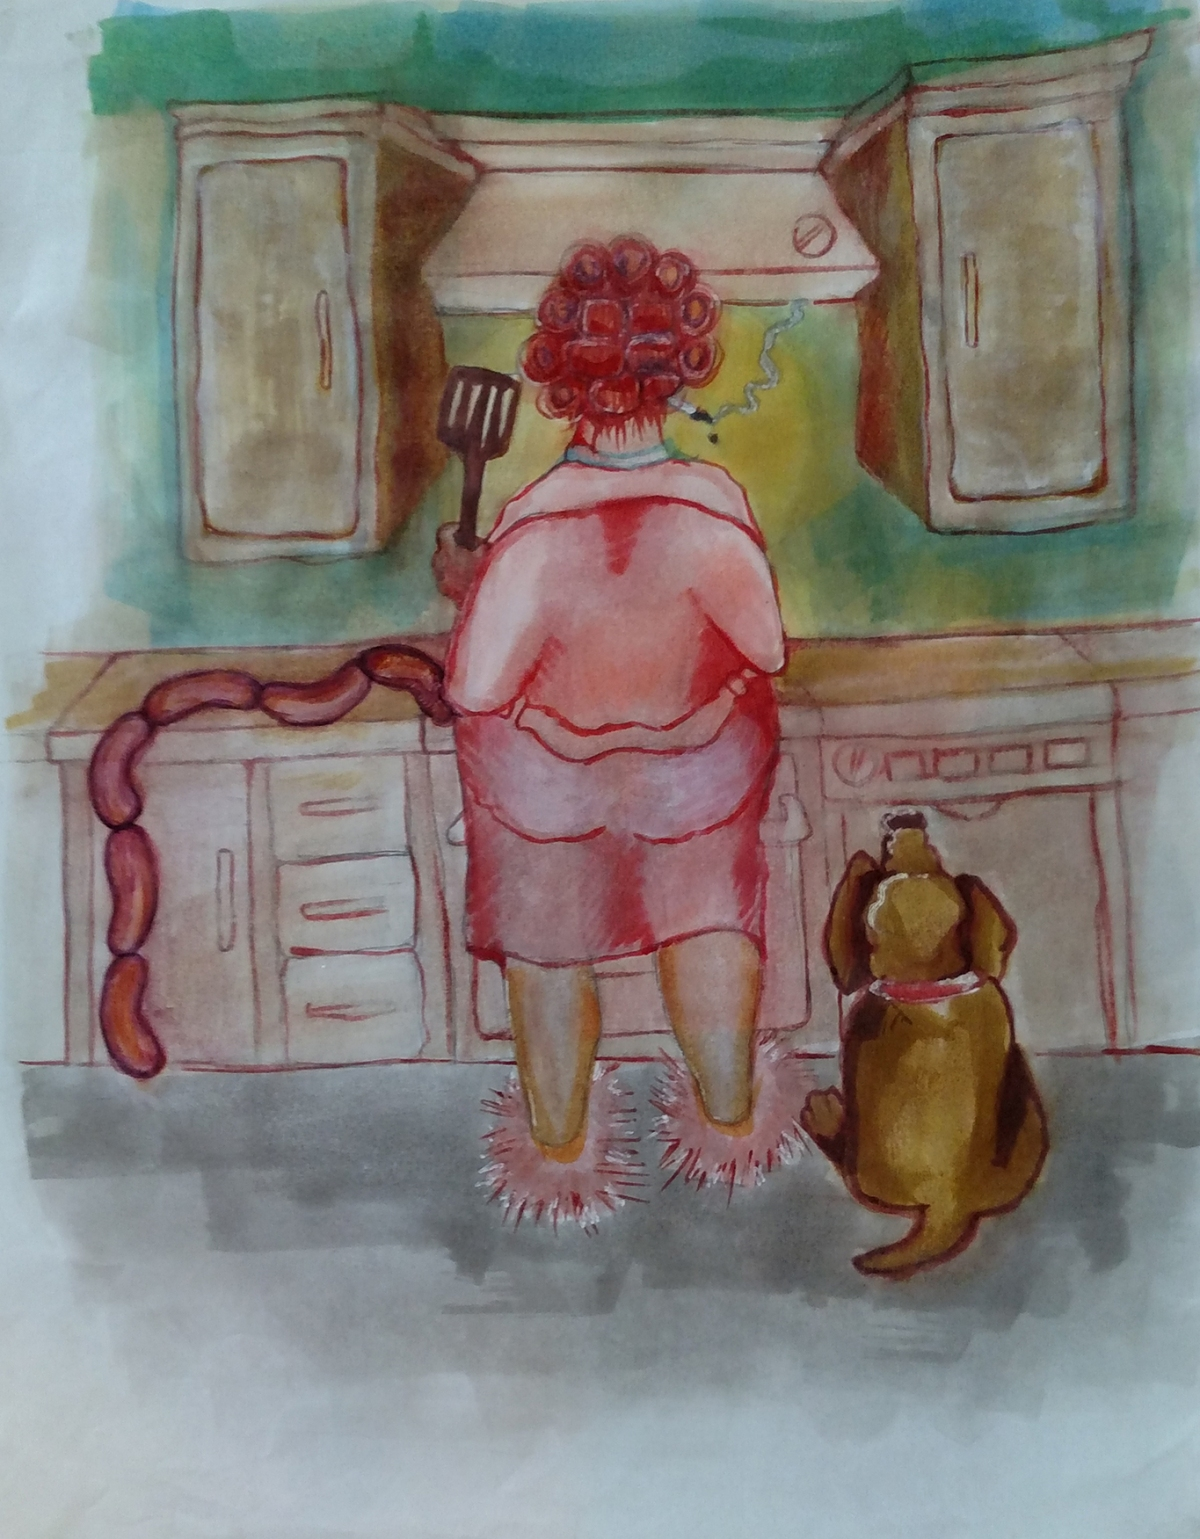 Illustration of a woman smoking and cooking sausages. A dog is standing by her side.